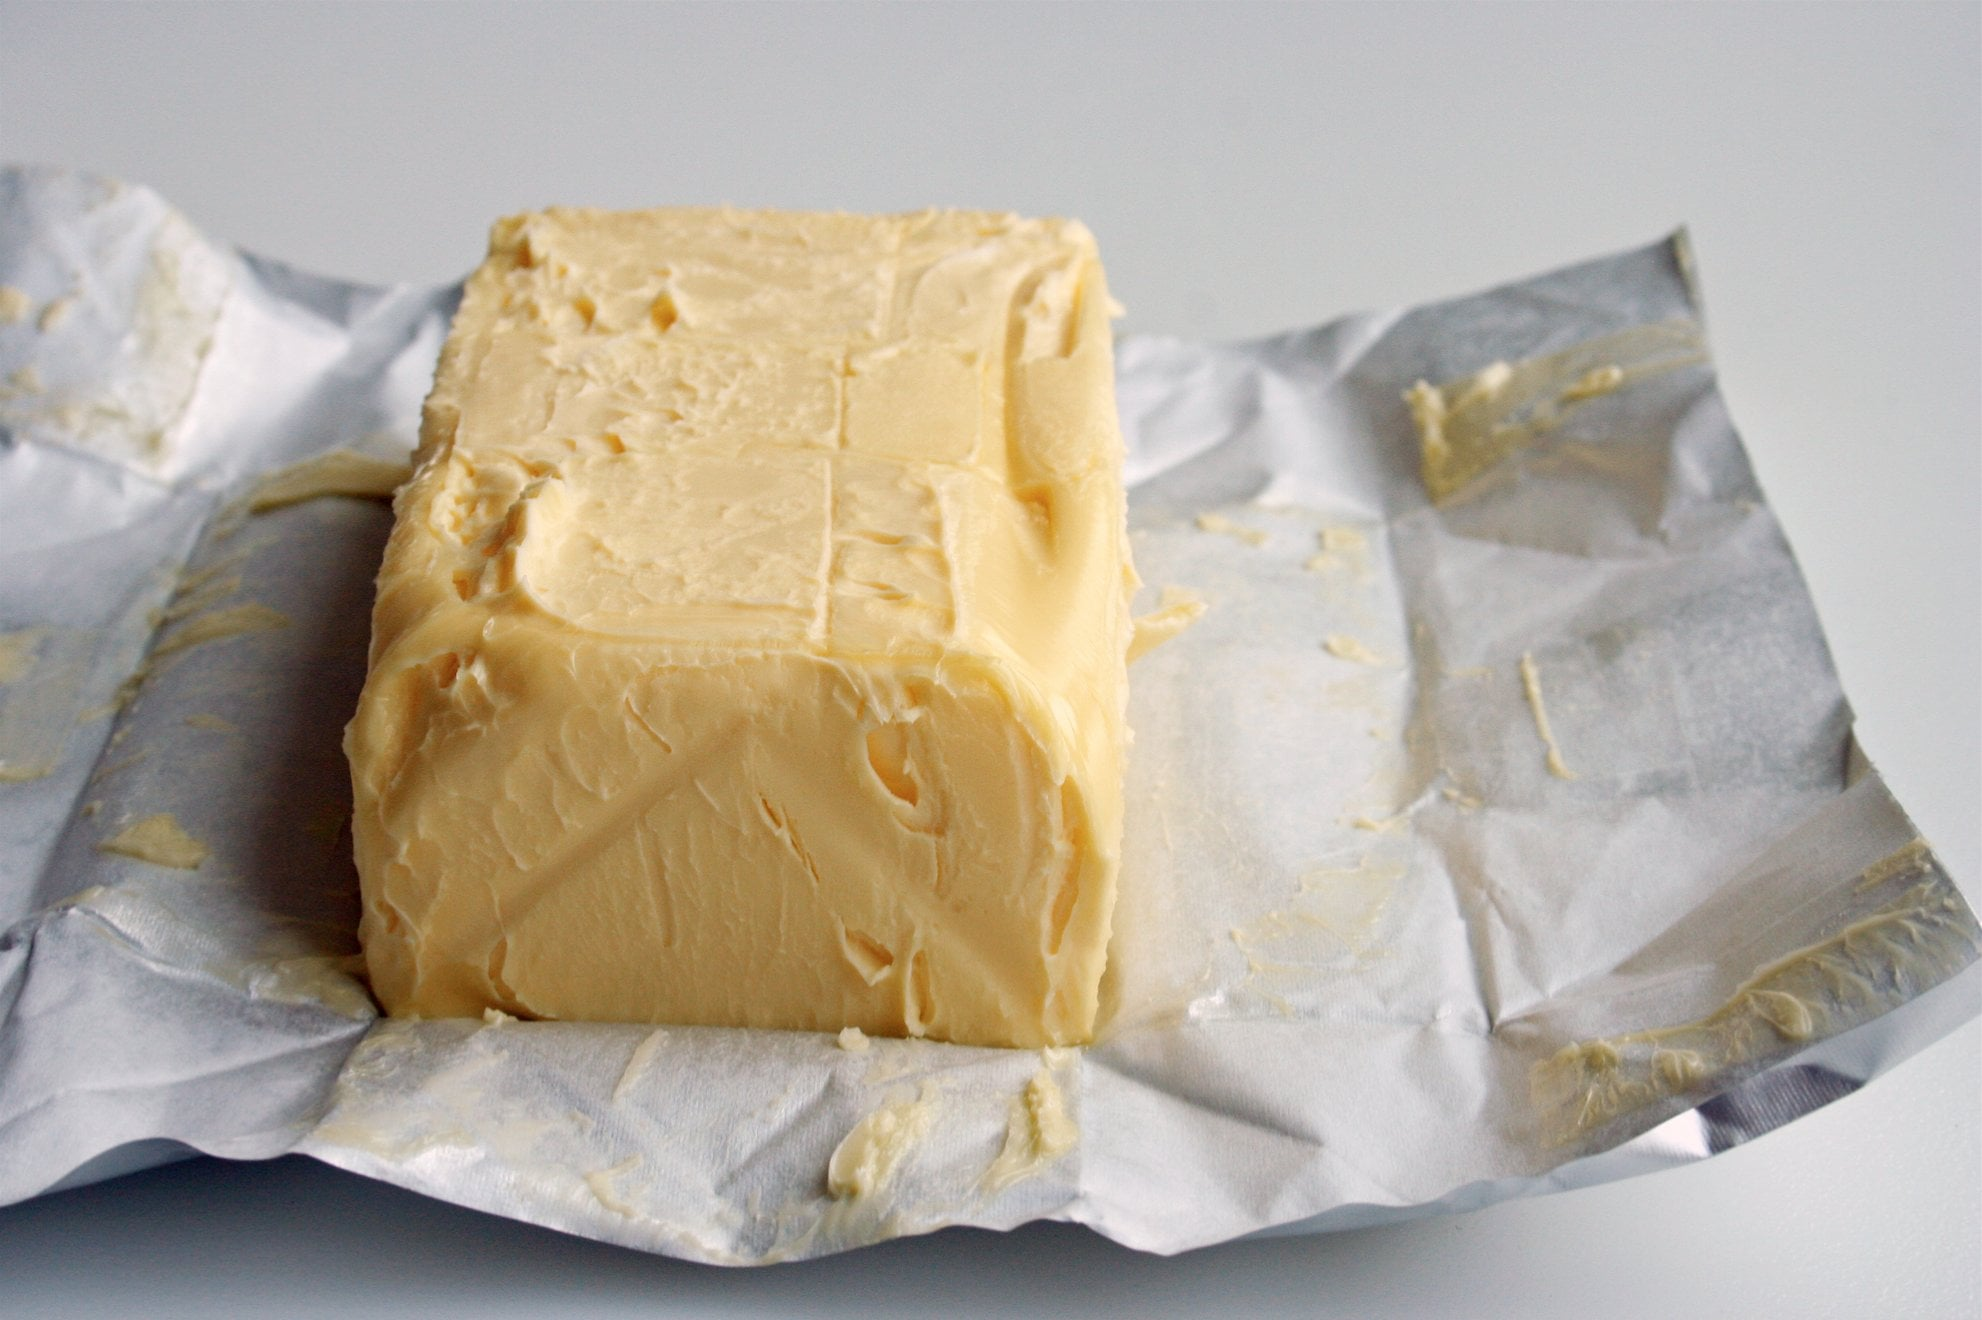 Kick Your Food Into High Gear With the Addition of Cannabis Butter